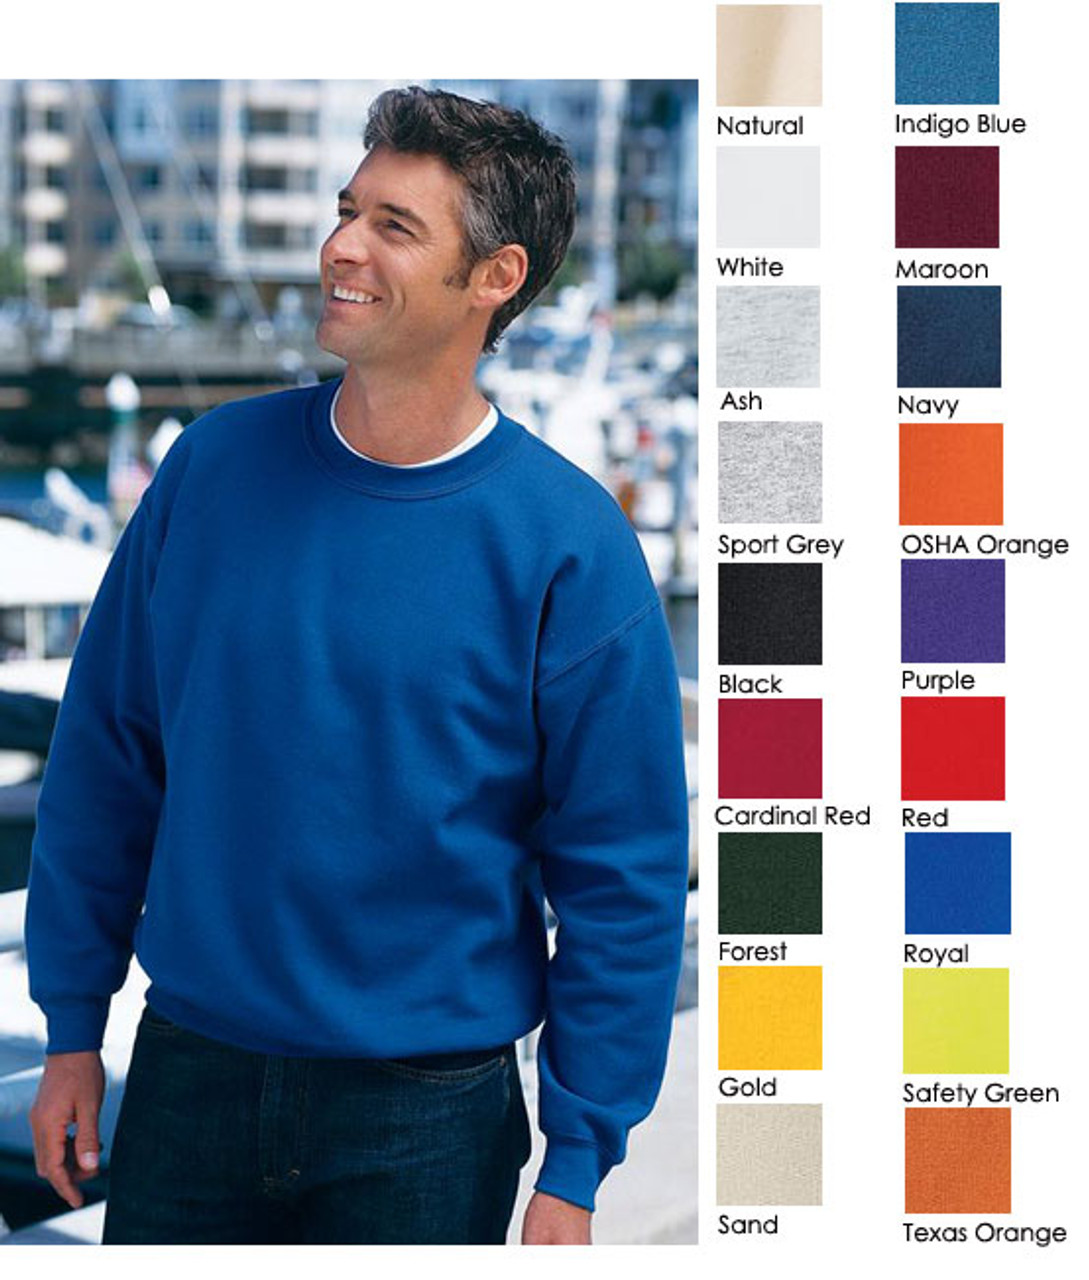 Basic crewneck sweatshirt will look great with your logo on it!